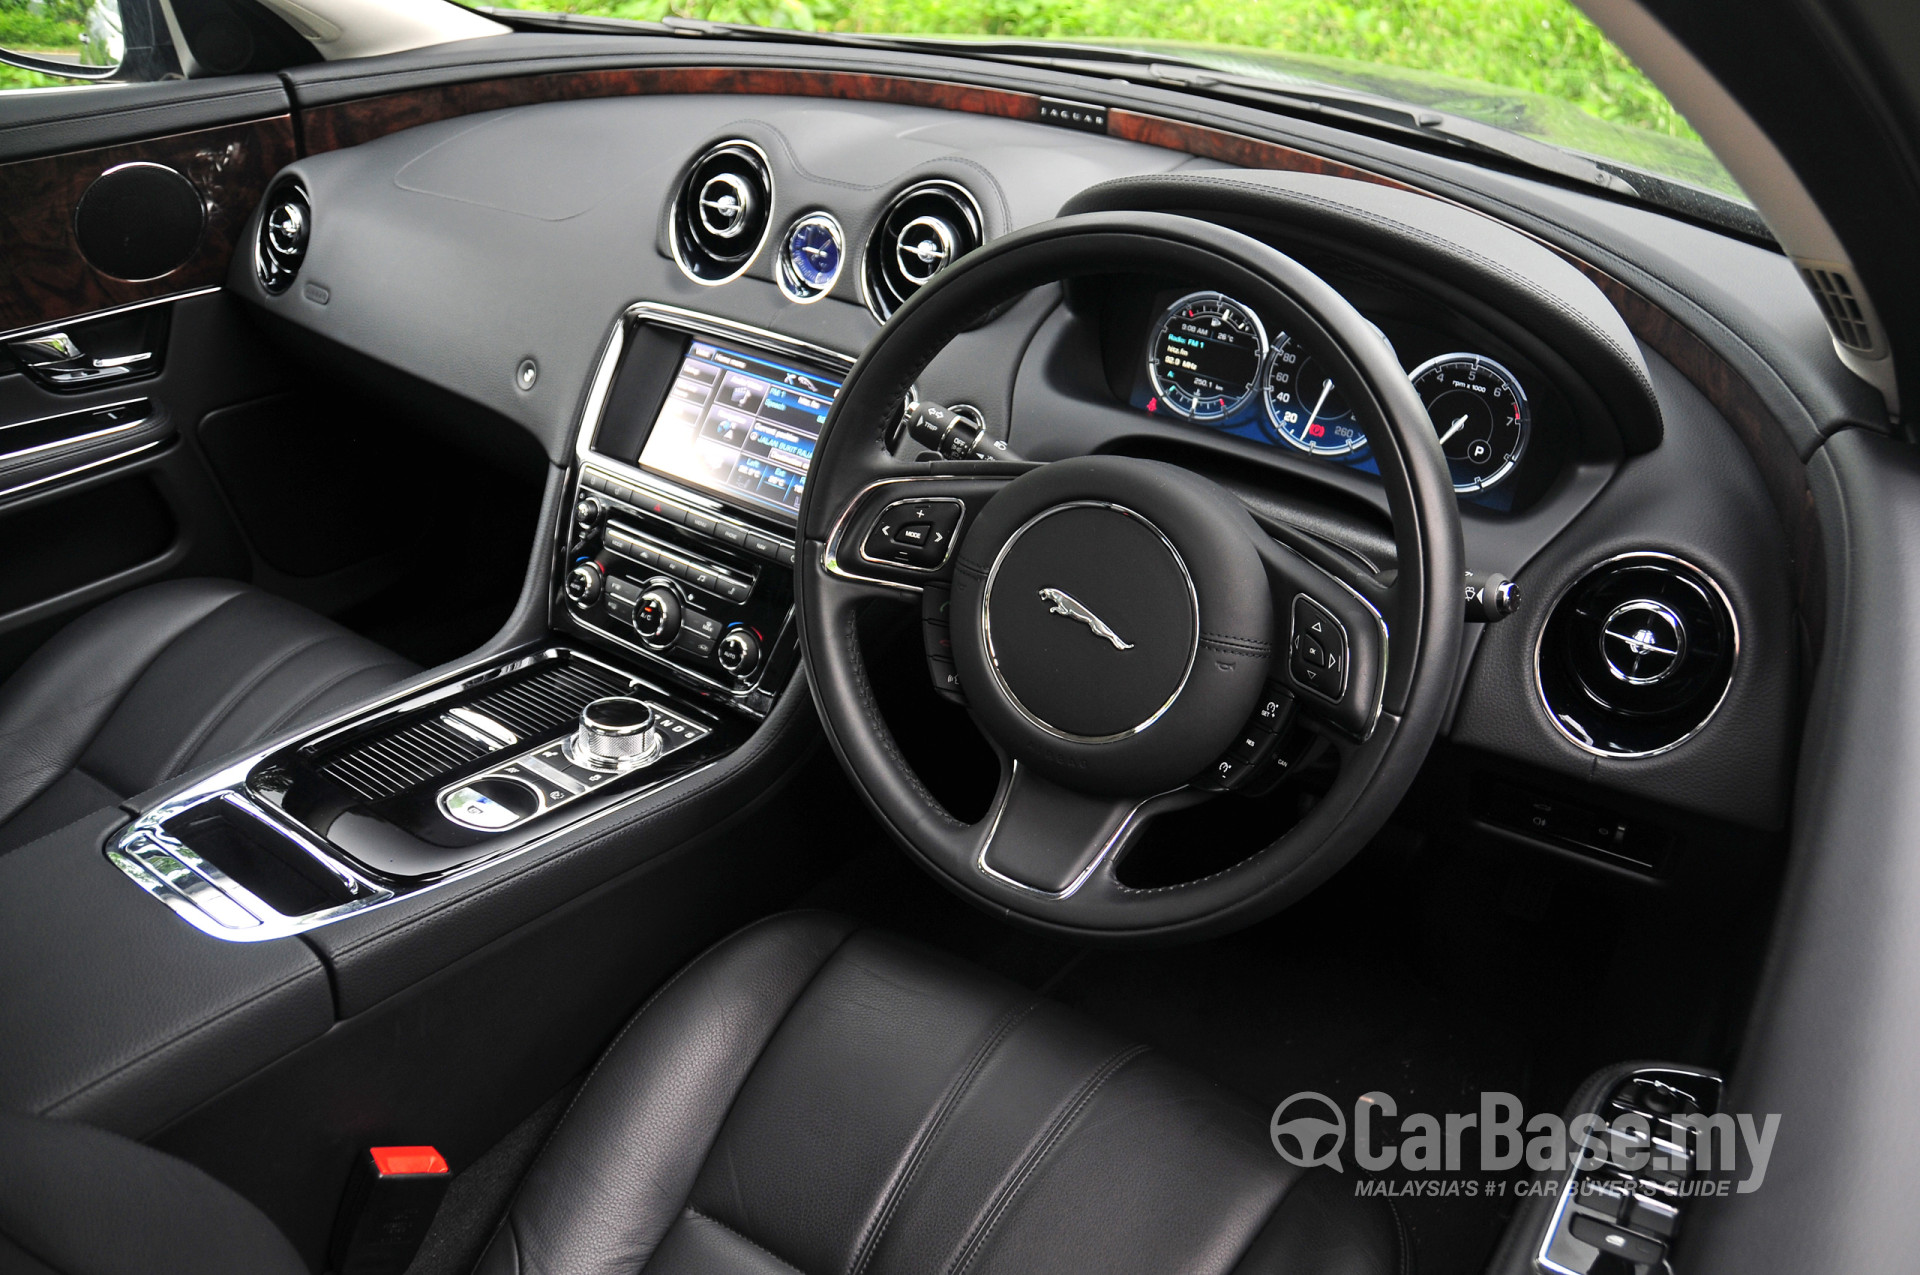 new price cars of start features tc xf complete jaguar slideshow